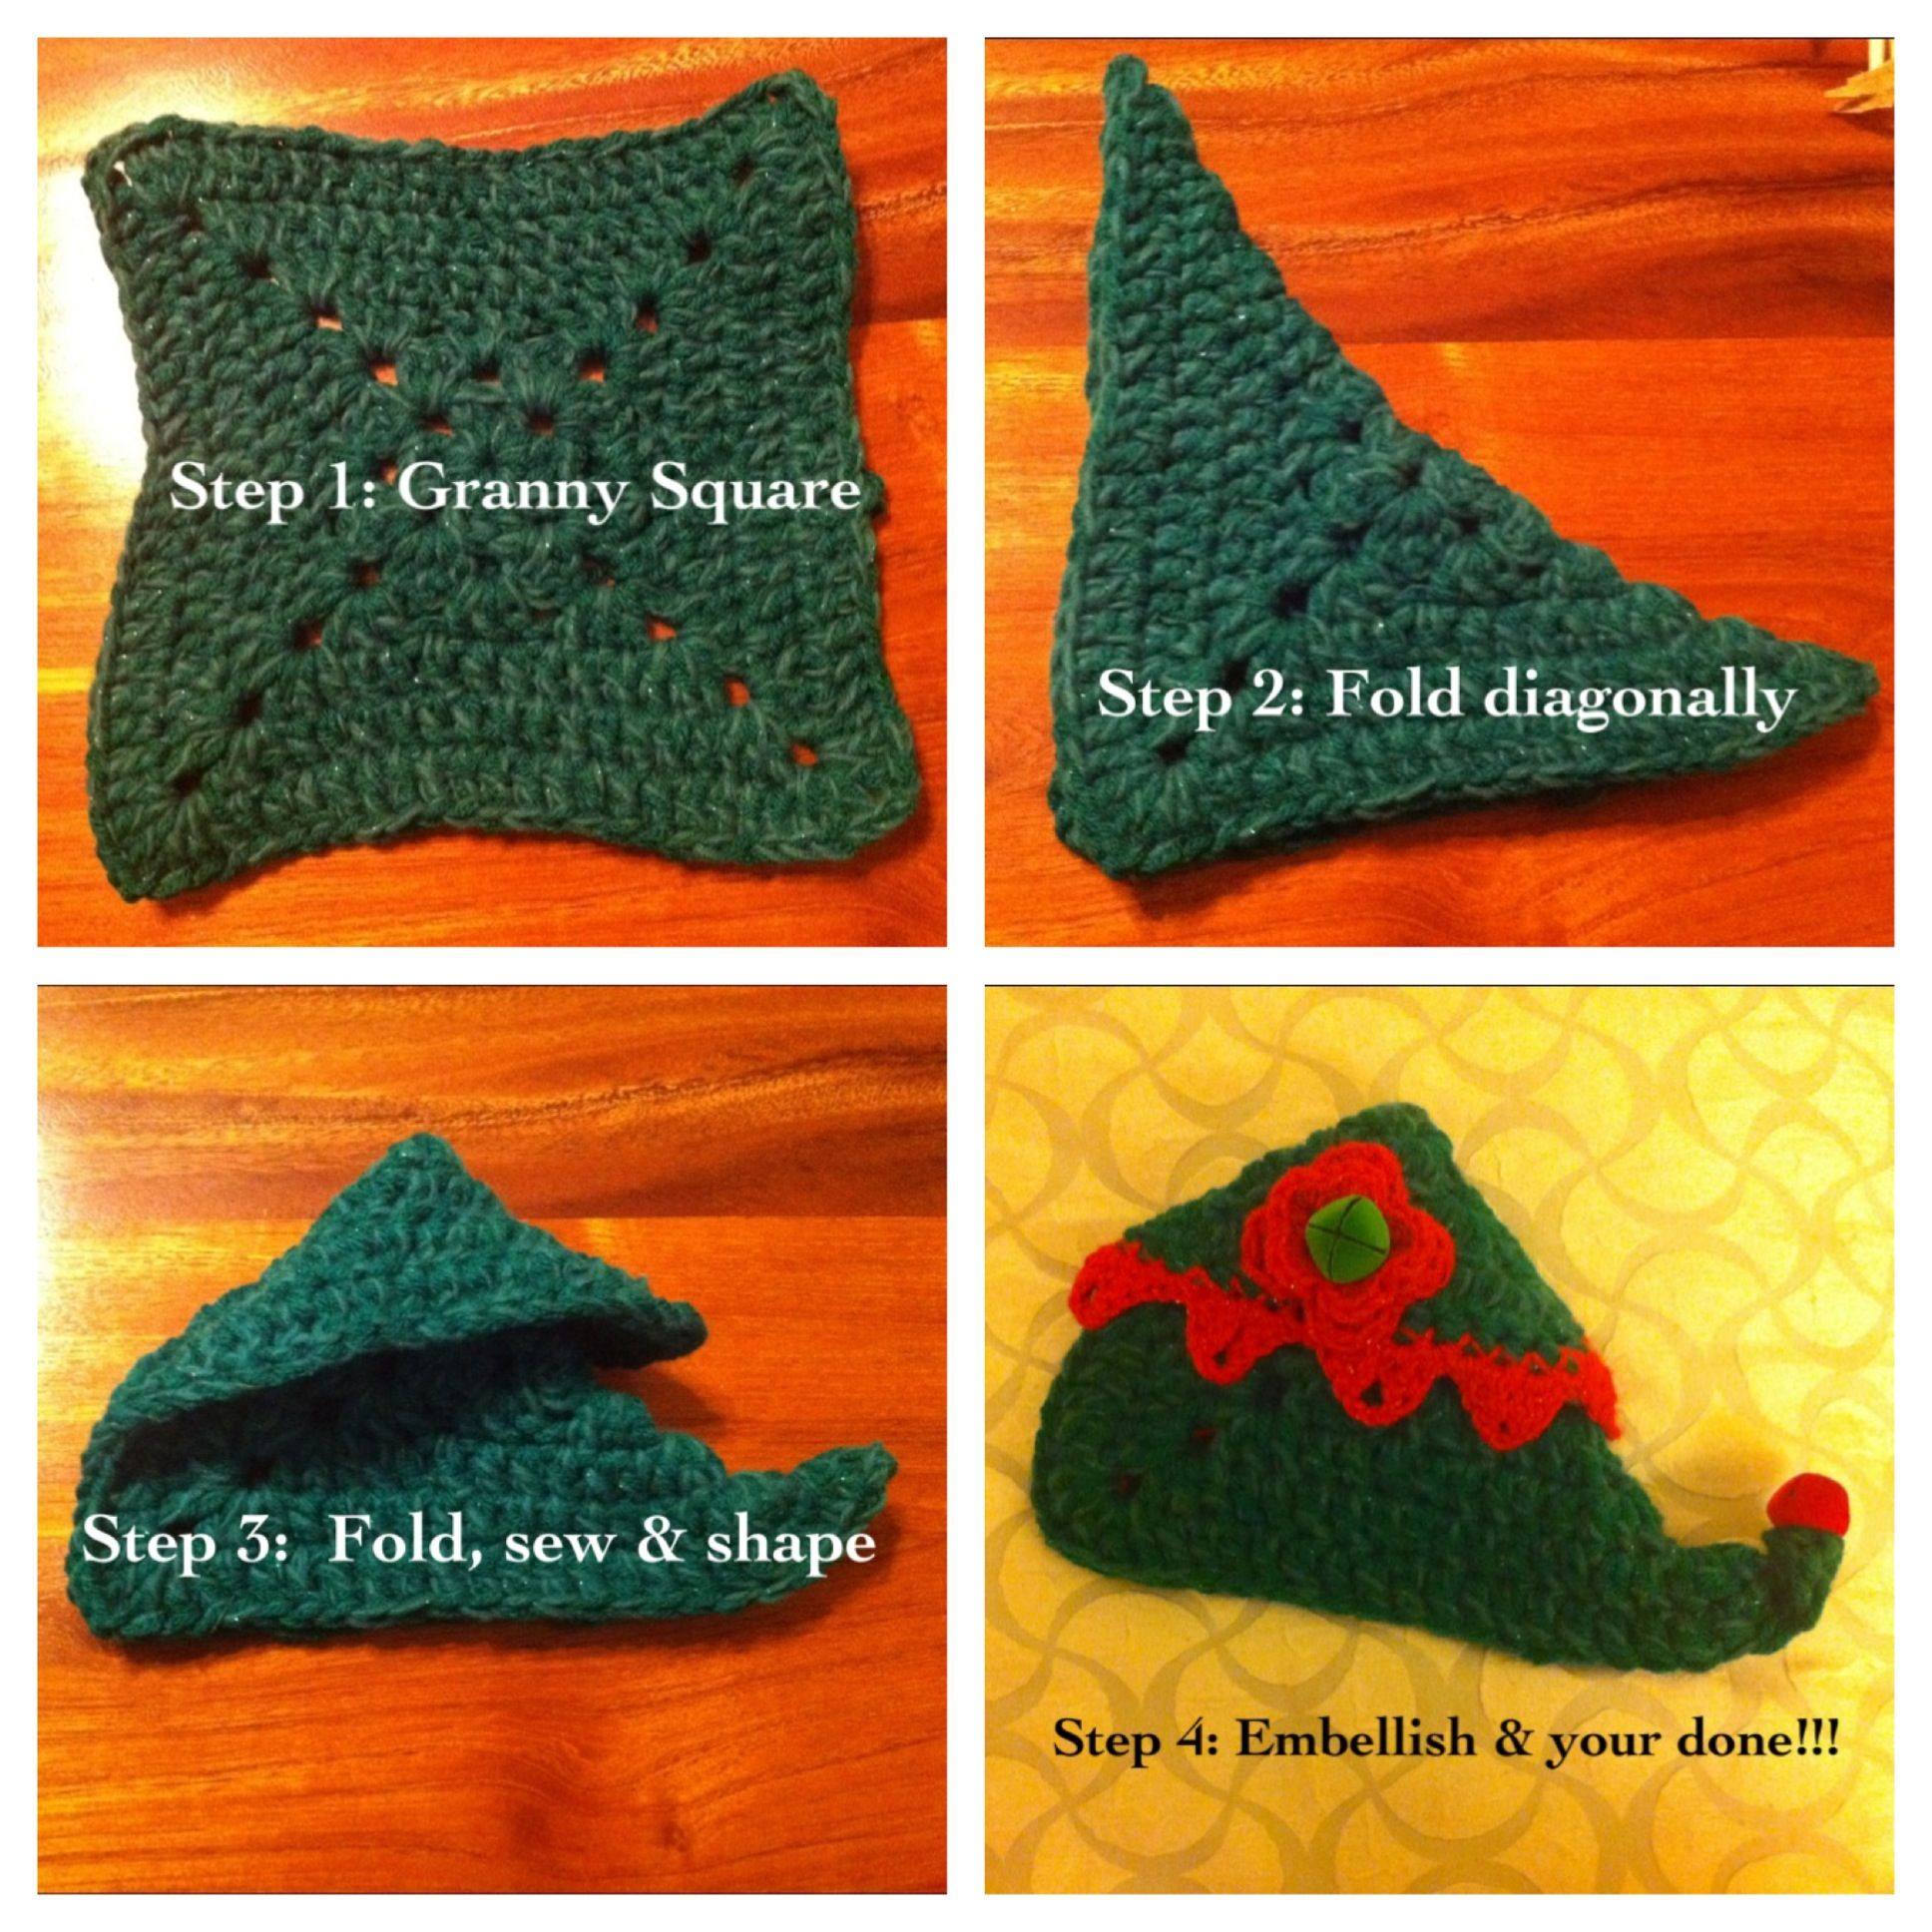 DIY - Elf Slippers from a knit or crochet square! (By Cass Knuckles ...